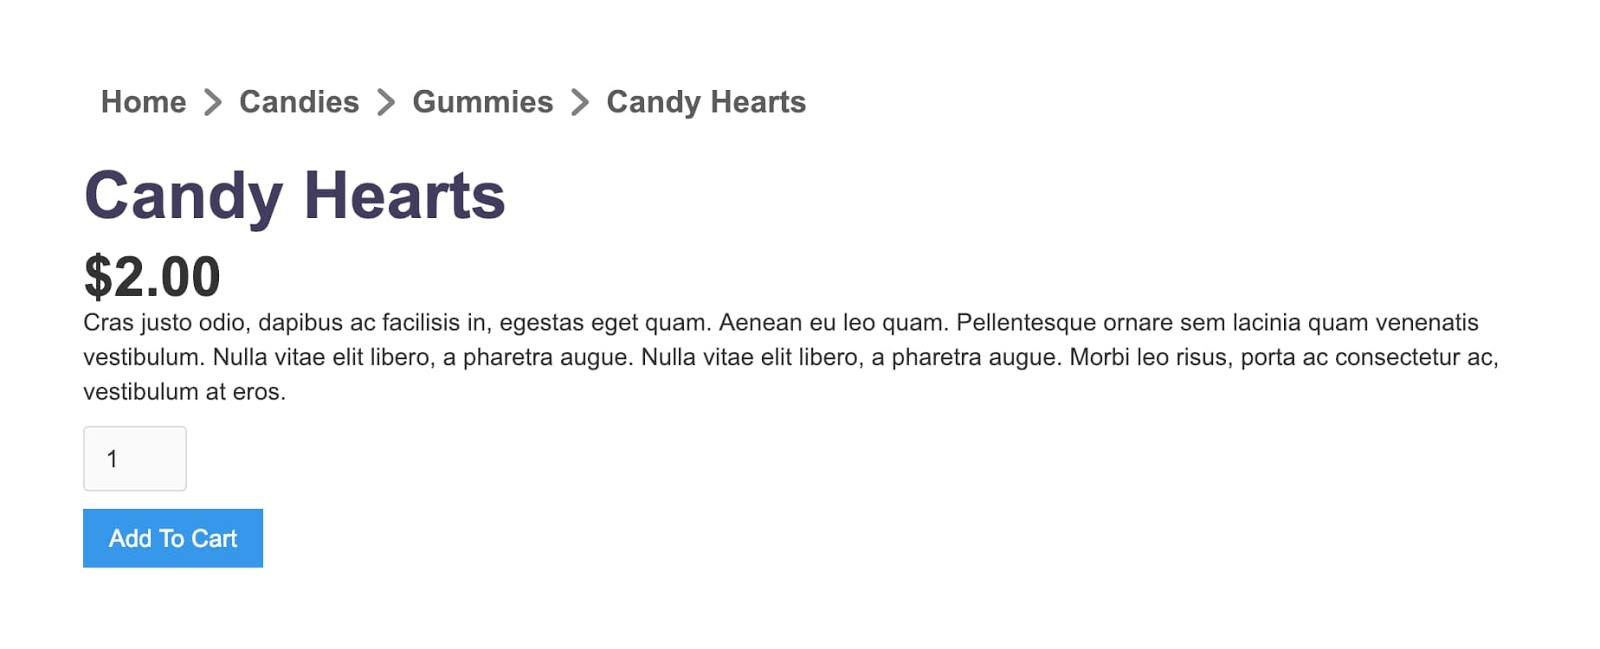 Product name, price and description with an Add to Cart button. Breadcrum at top reads Home > Candies > Gummies > Candy Hearts.